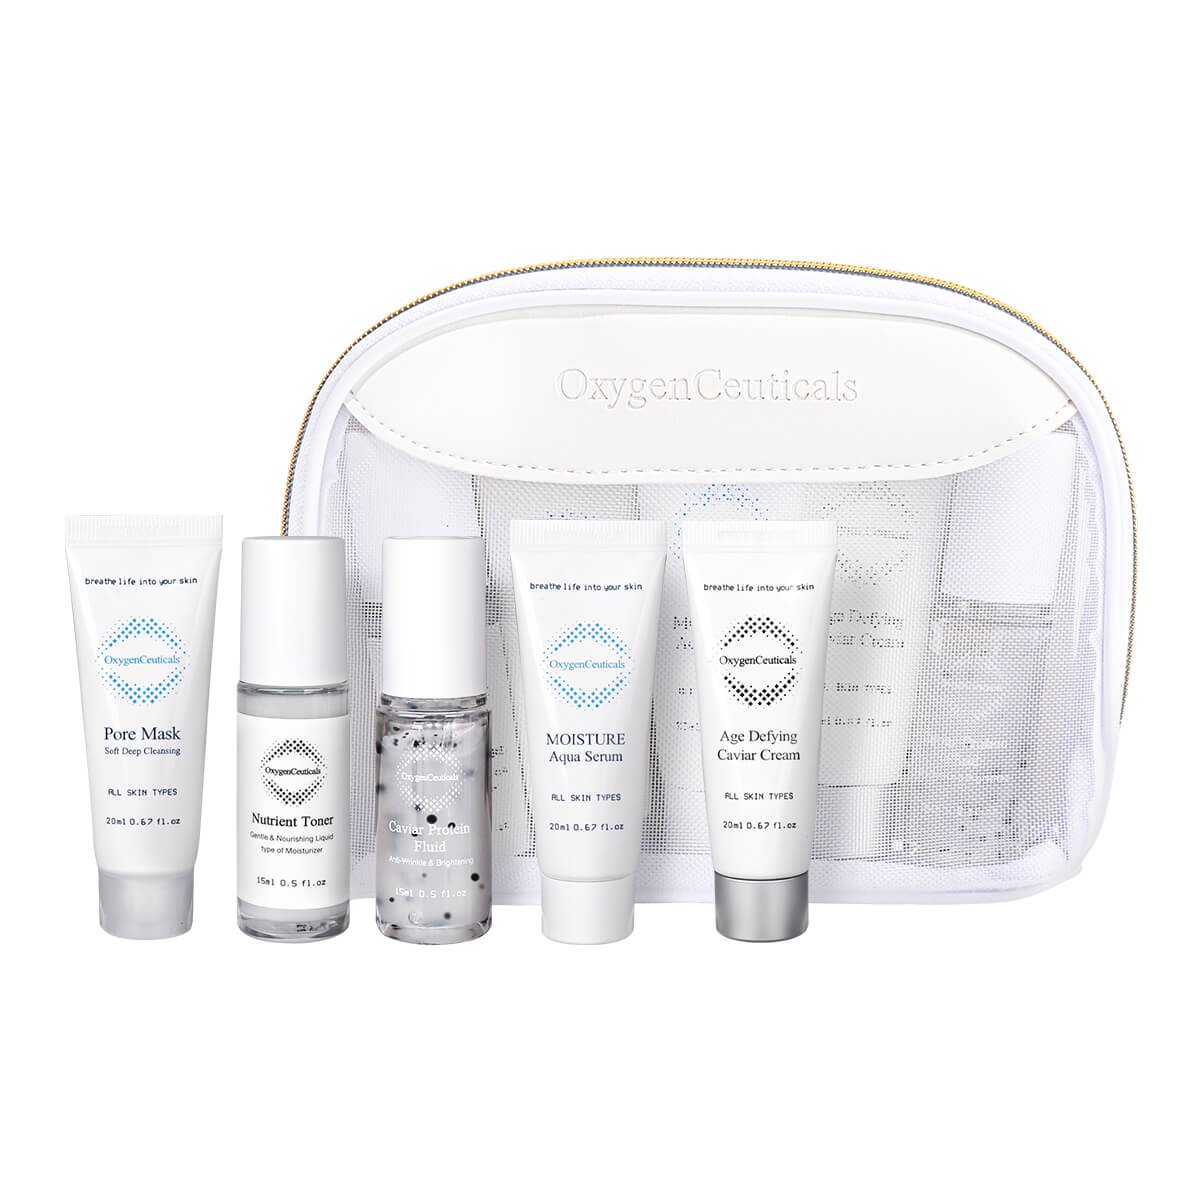 Age Defying Kit Skin Care Set with facial cleanser toner fluid serum cream